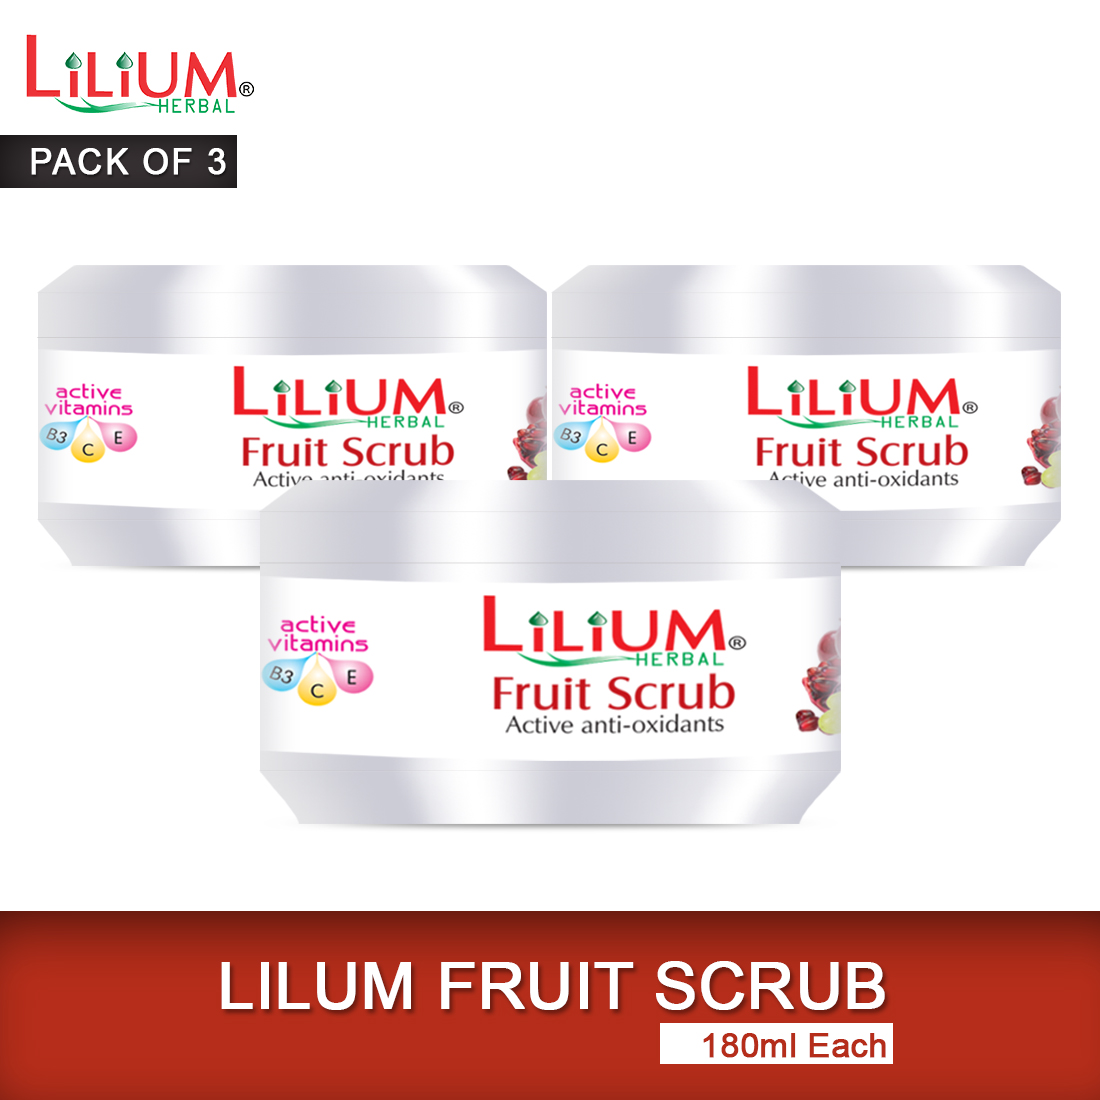 Lilium Fruit Scrub with Fruit Extracts and Olive Oils 180ml Pack of 3